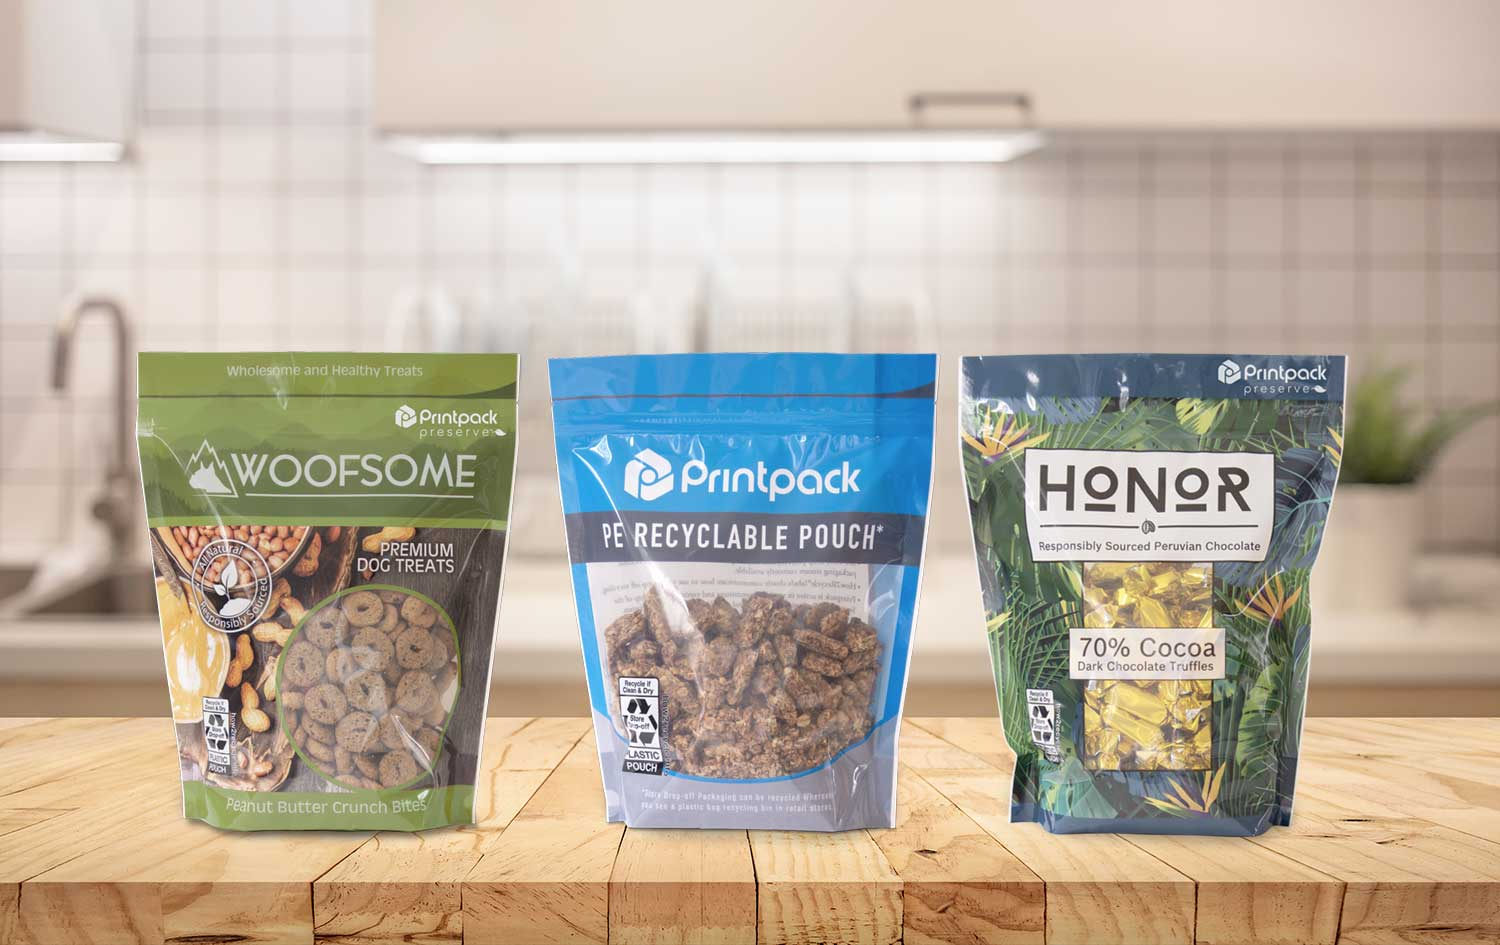 Printpack Preserve stand-up pouches